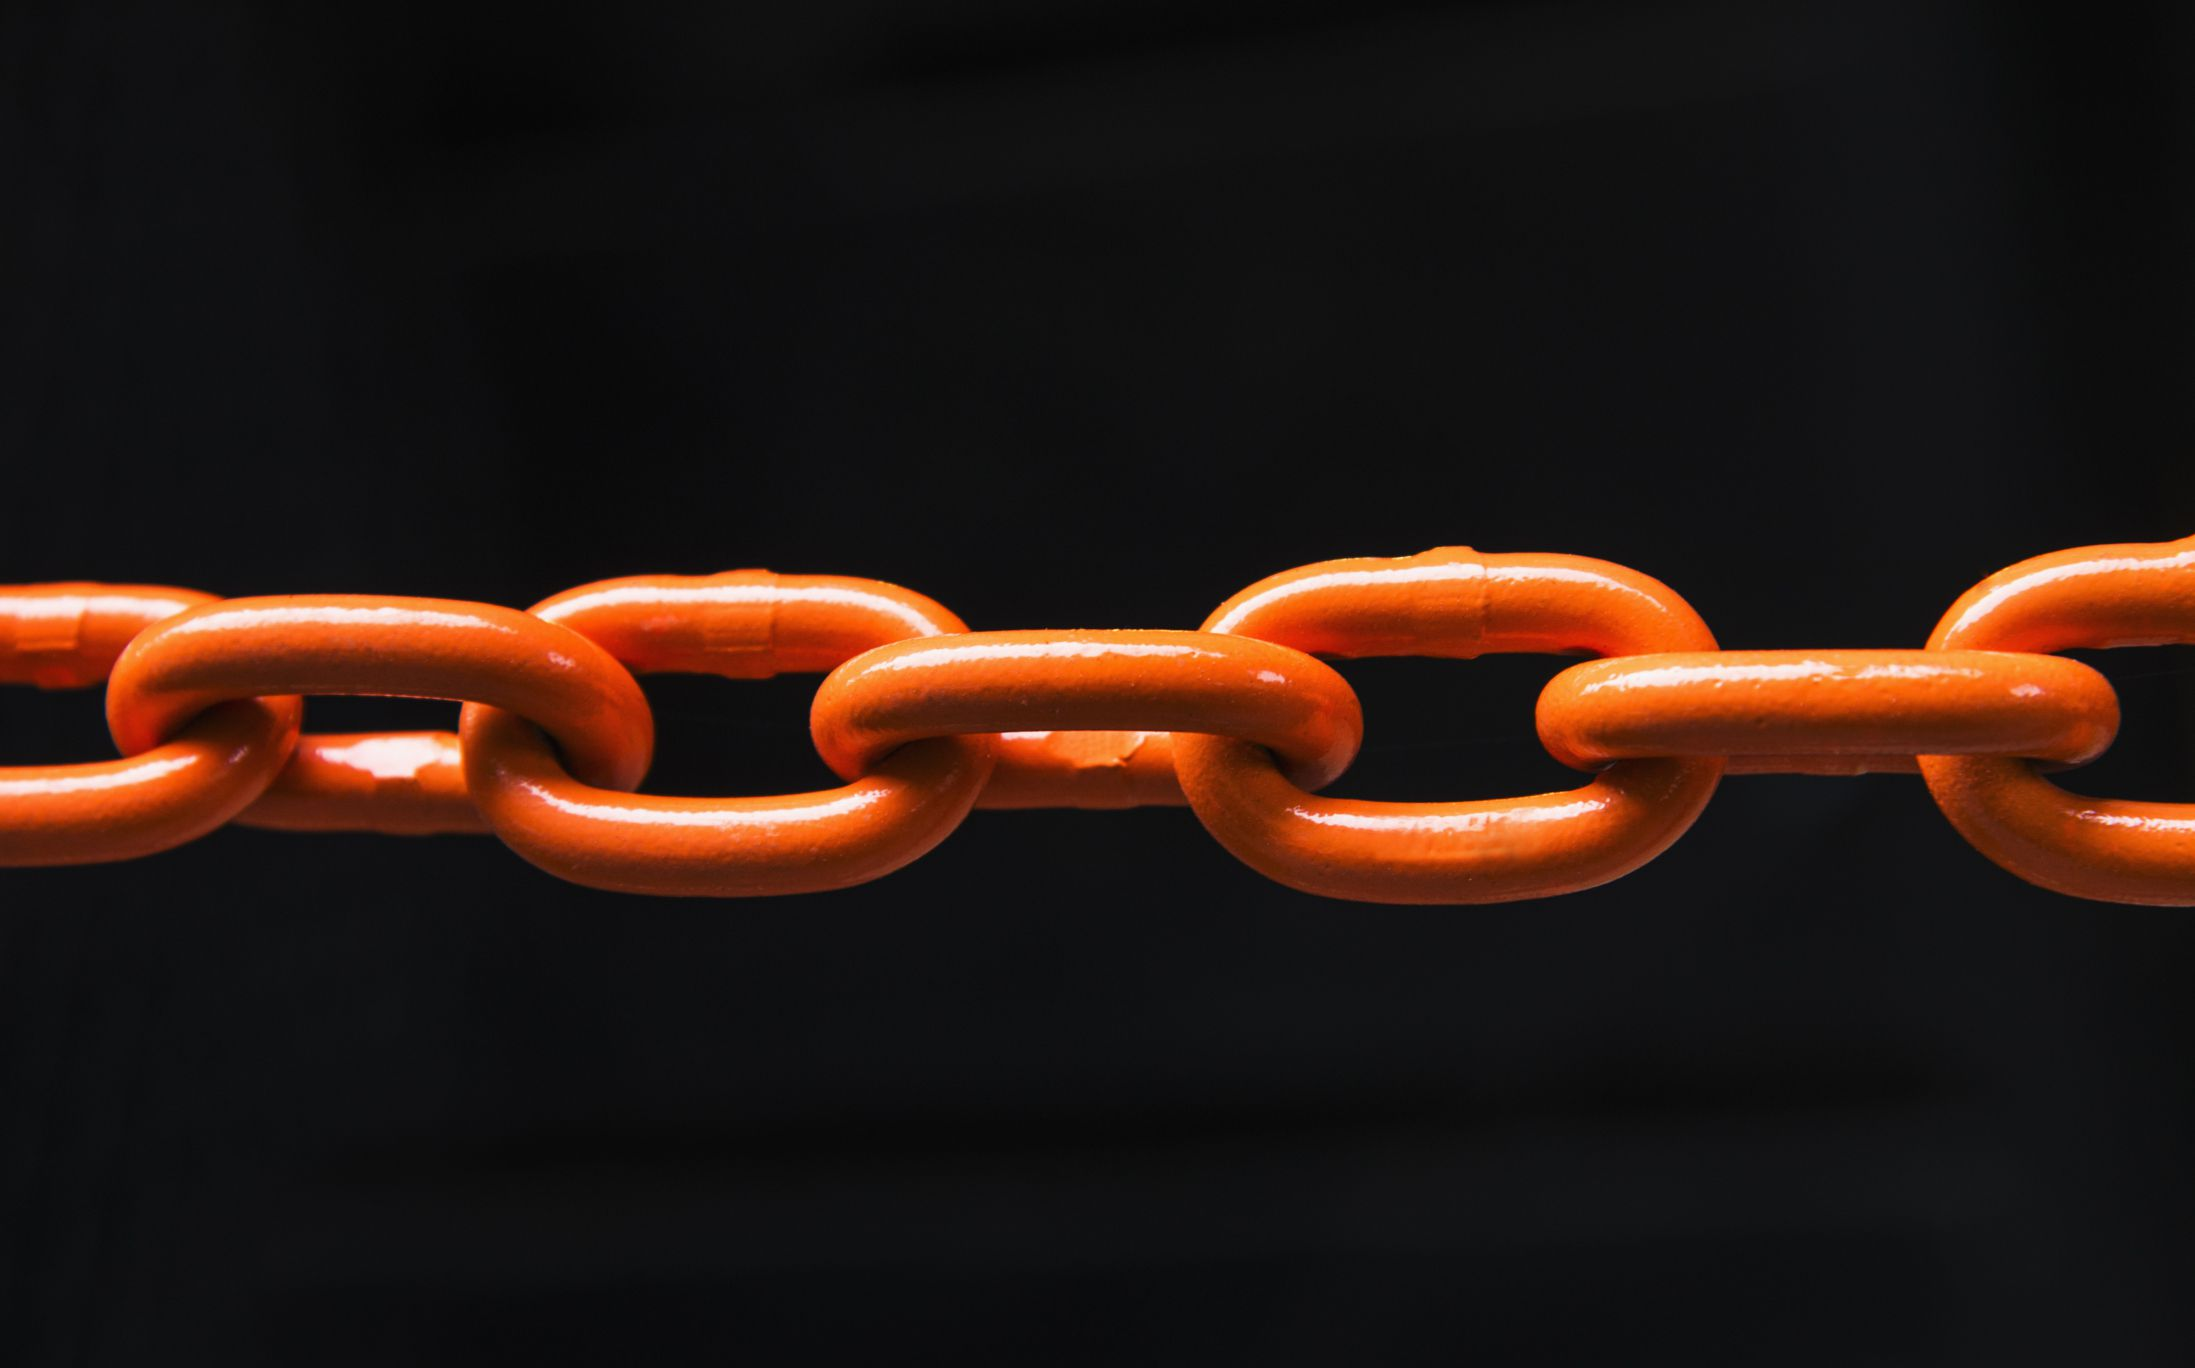 Why Blockchain Funding May Fall 60% as Technology Loses Allure